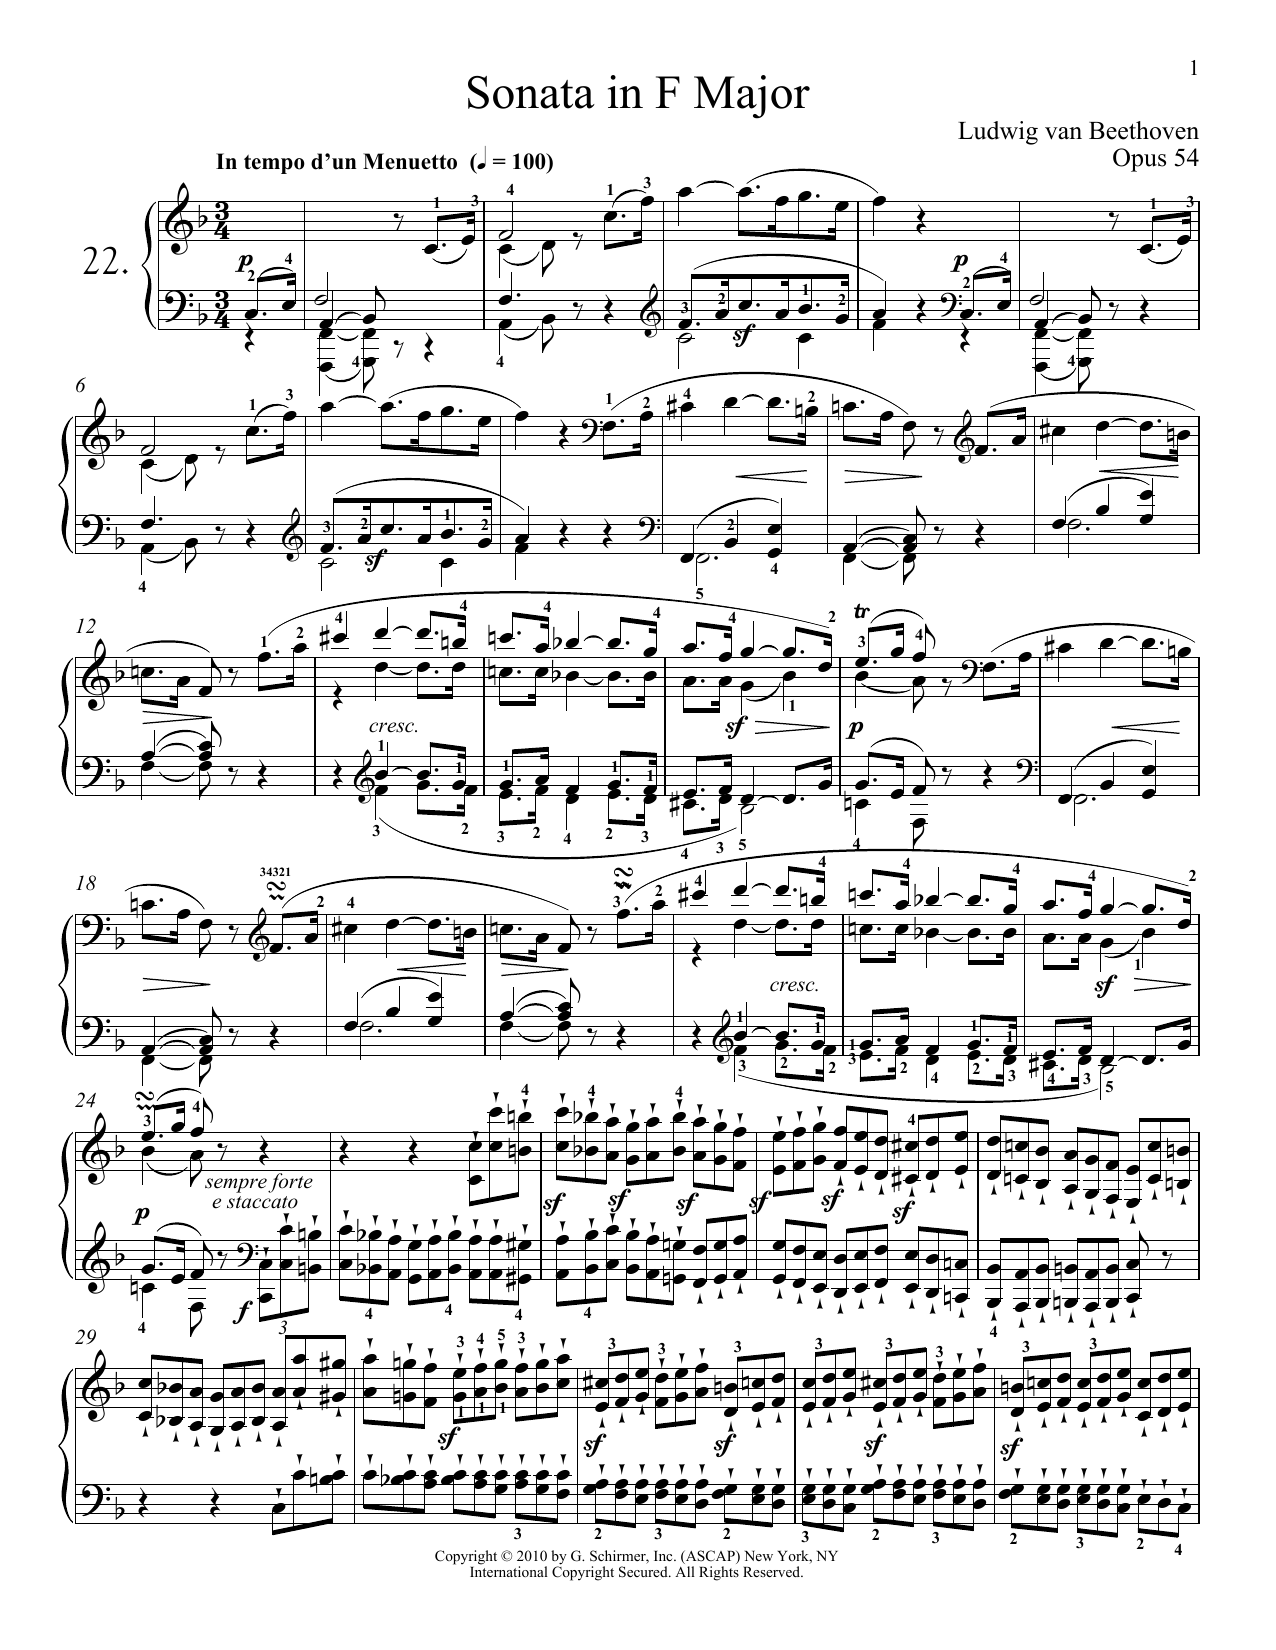 Piano Sonata No. 22 In F Major, Op. 54 Sheet Music